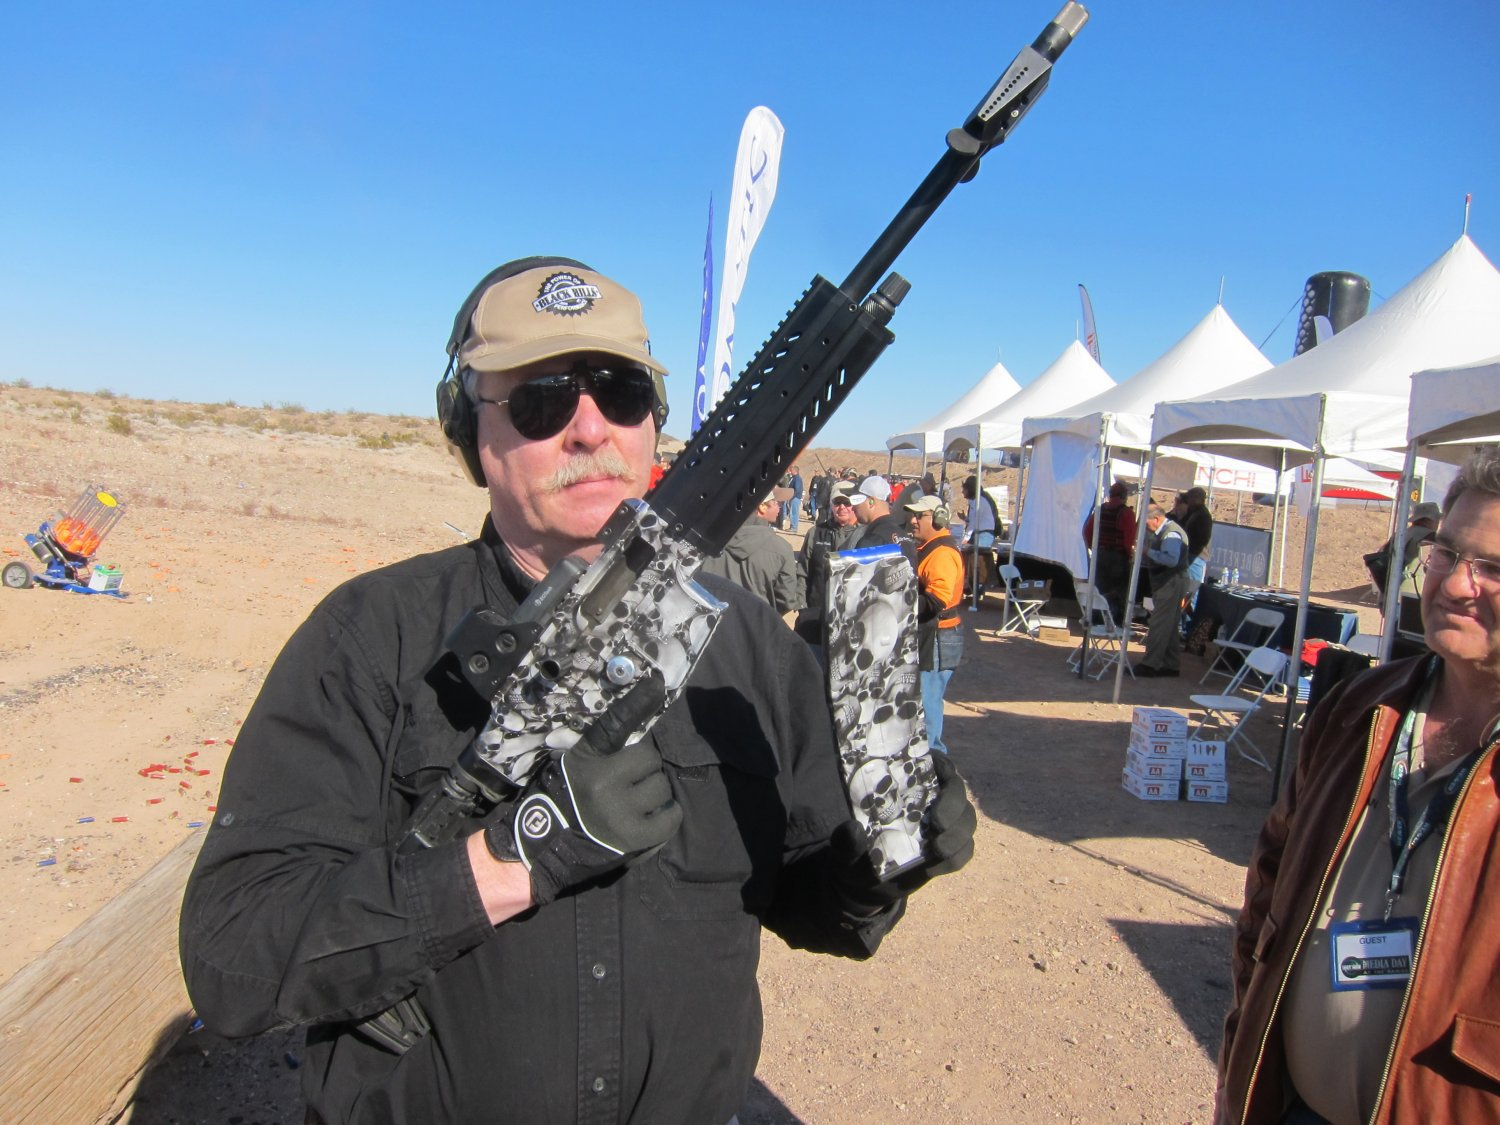 """RAAC Akdal MKA 1919 Shotgun """"Super-Tuned"""" by Firebird Precision and Run at the Range at SHOT Show 2012 Media Day: Mag-Fed, Gas-Operated Semi-Auto 12-Gauge Tactical """"AR-15 Shotgun"""" with 10-Rounds of 12ga Firepower for Martial Combat or Competition! (Video!)"""